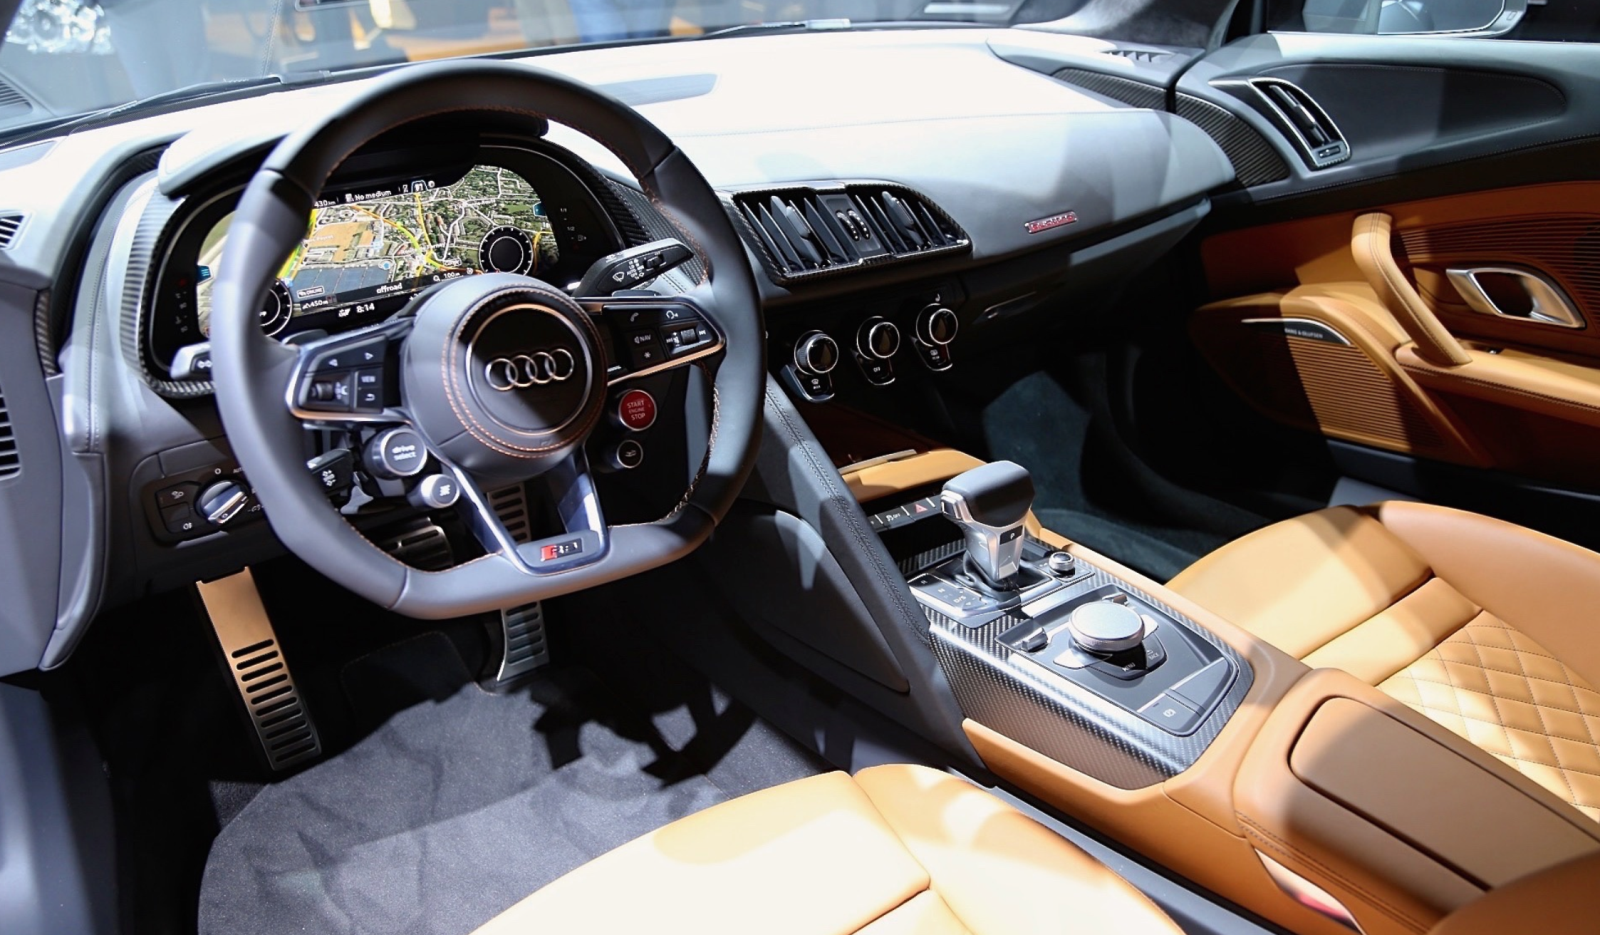 2016 audi r8 interior audi pinterest audi r8. Black Bedroom Furniture Sets. Home Design Ideas